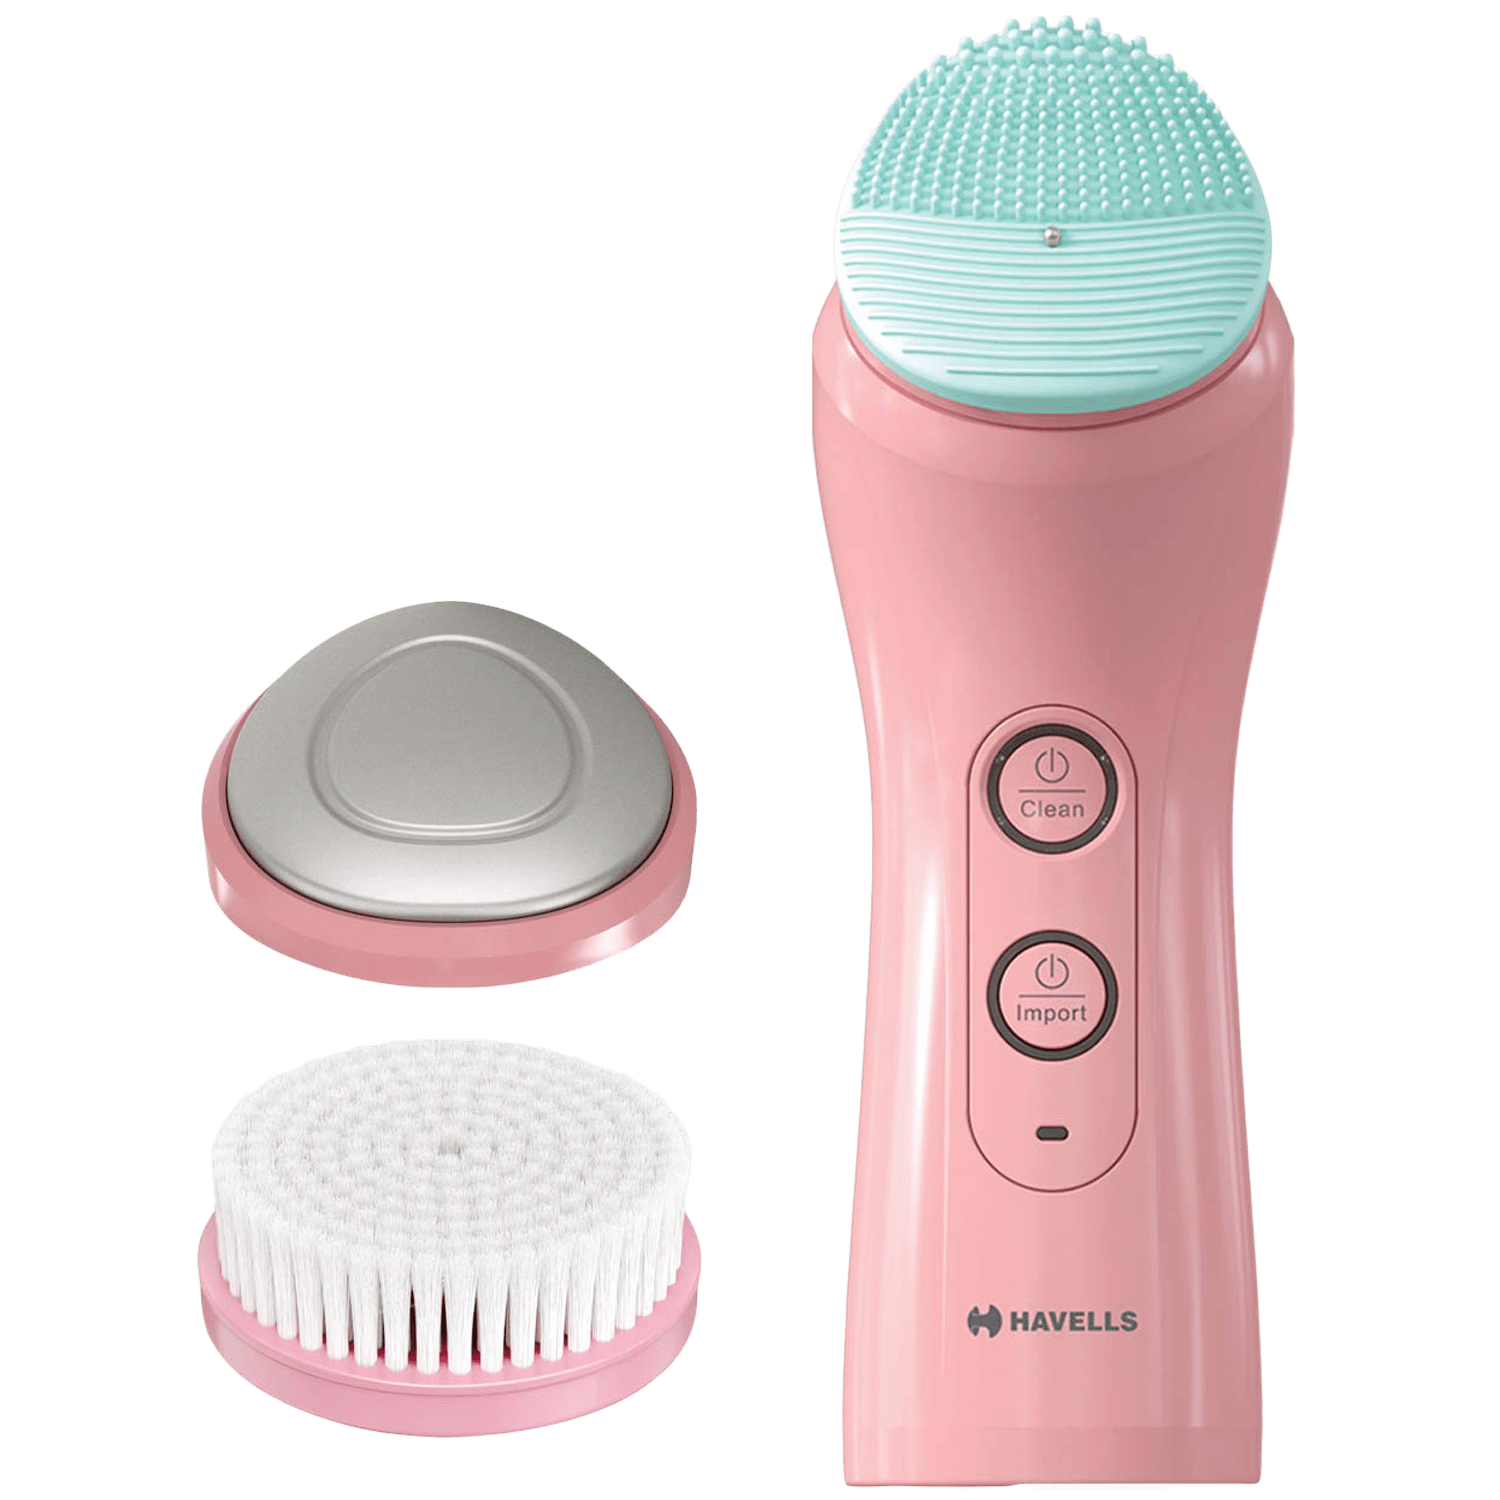 Havells Skin Care Cordless 2-in-1 Facial Cleanser (6 Operation Modes, SC5070, Pink)